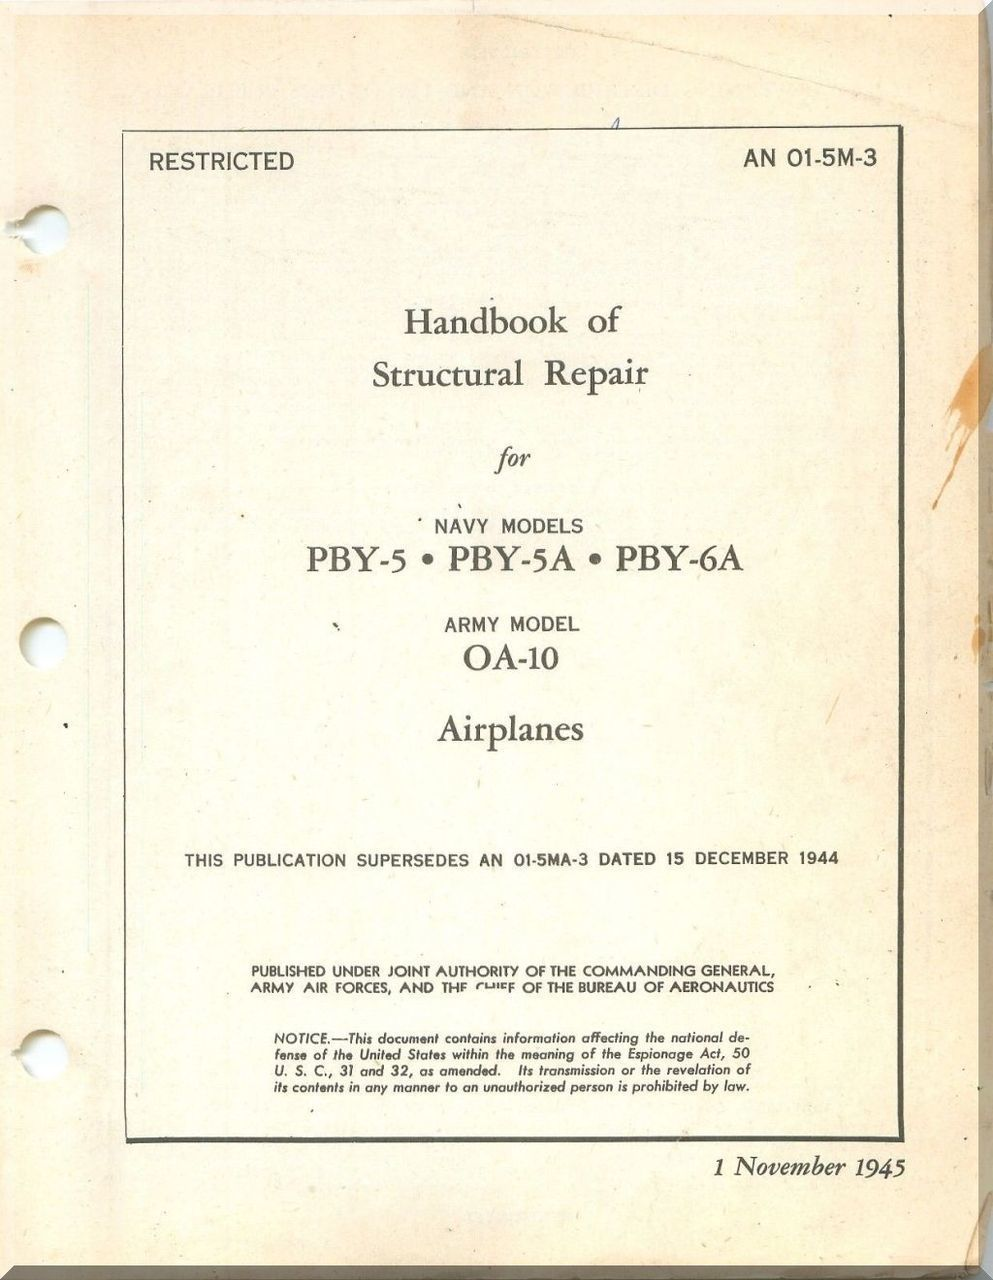 Handbook of Structural Repair - Navy Models PBY-5, 5A, 6A, Army OA-10 Aircraft [AN 01-5M-3]